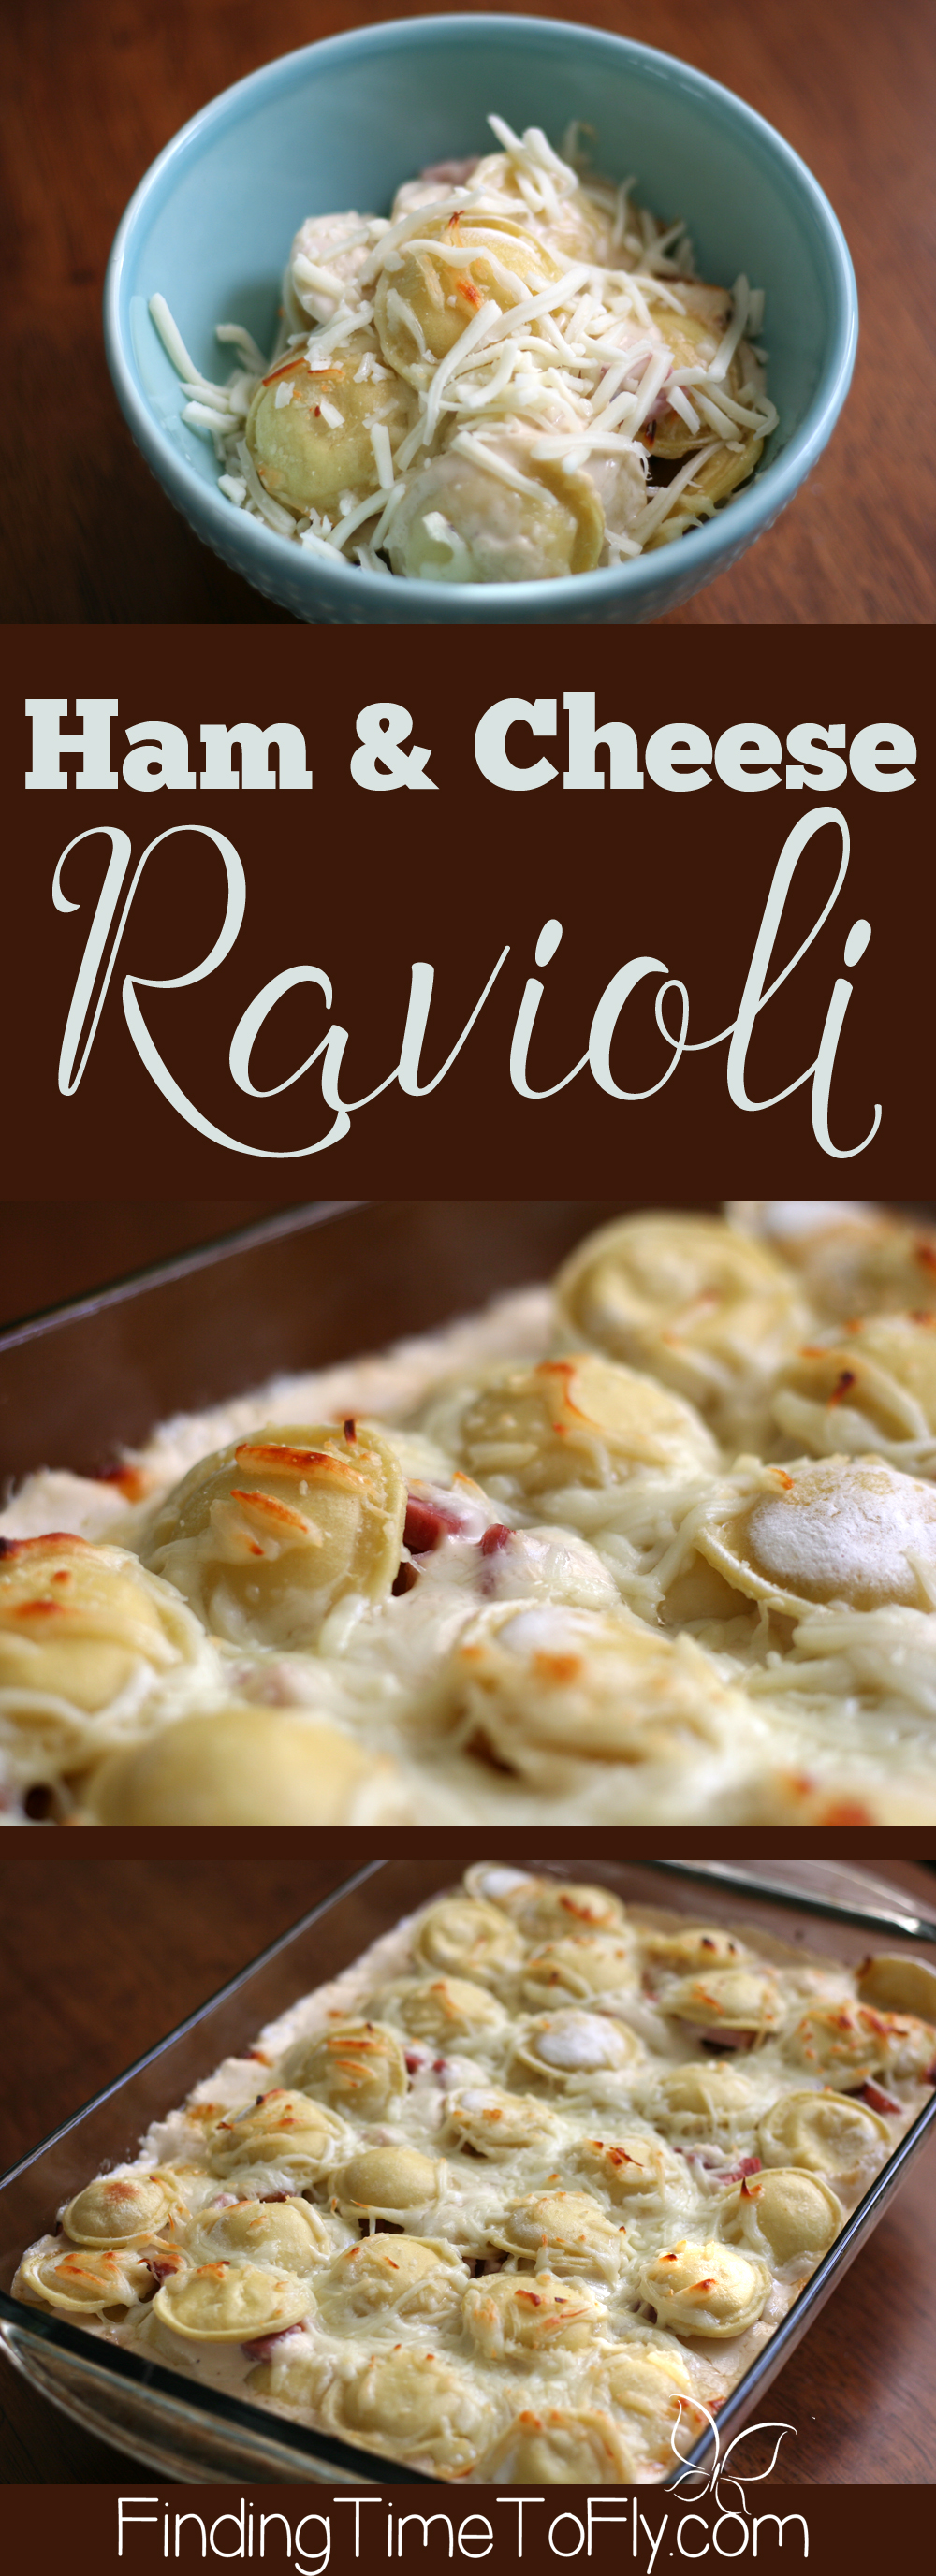 What a great recipe for leftover ham! Ham and Cheese Ravioli is a super easy weeknight dinner the whole family will love!